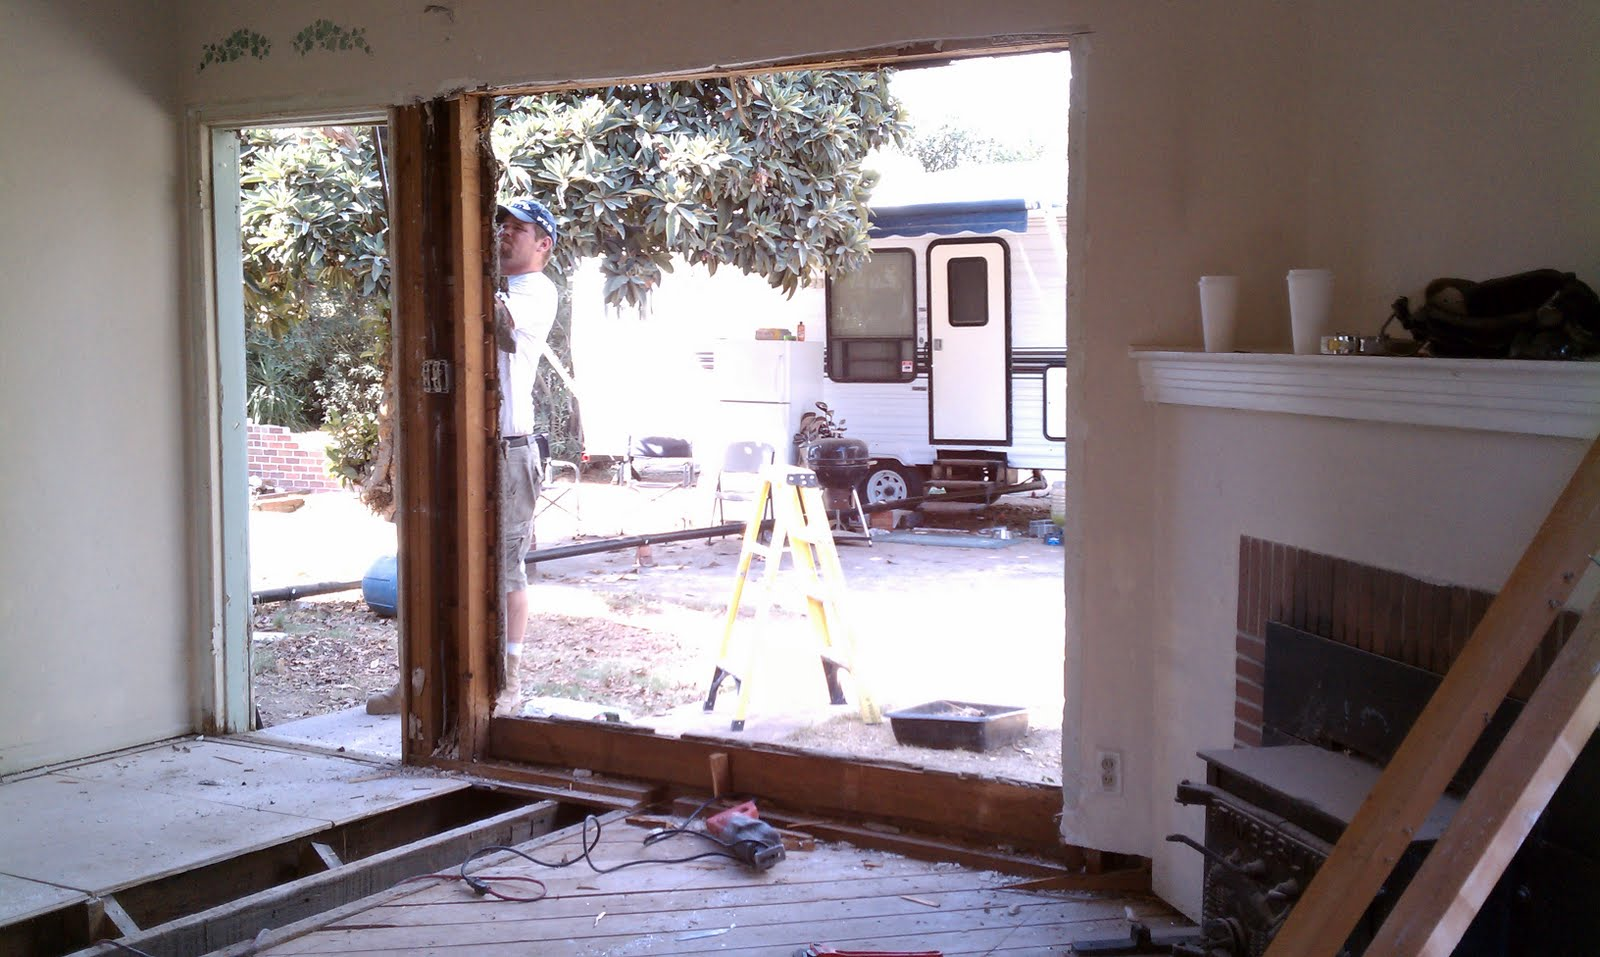 The Morse Project Sliding Glass Door And Window Placed In